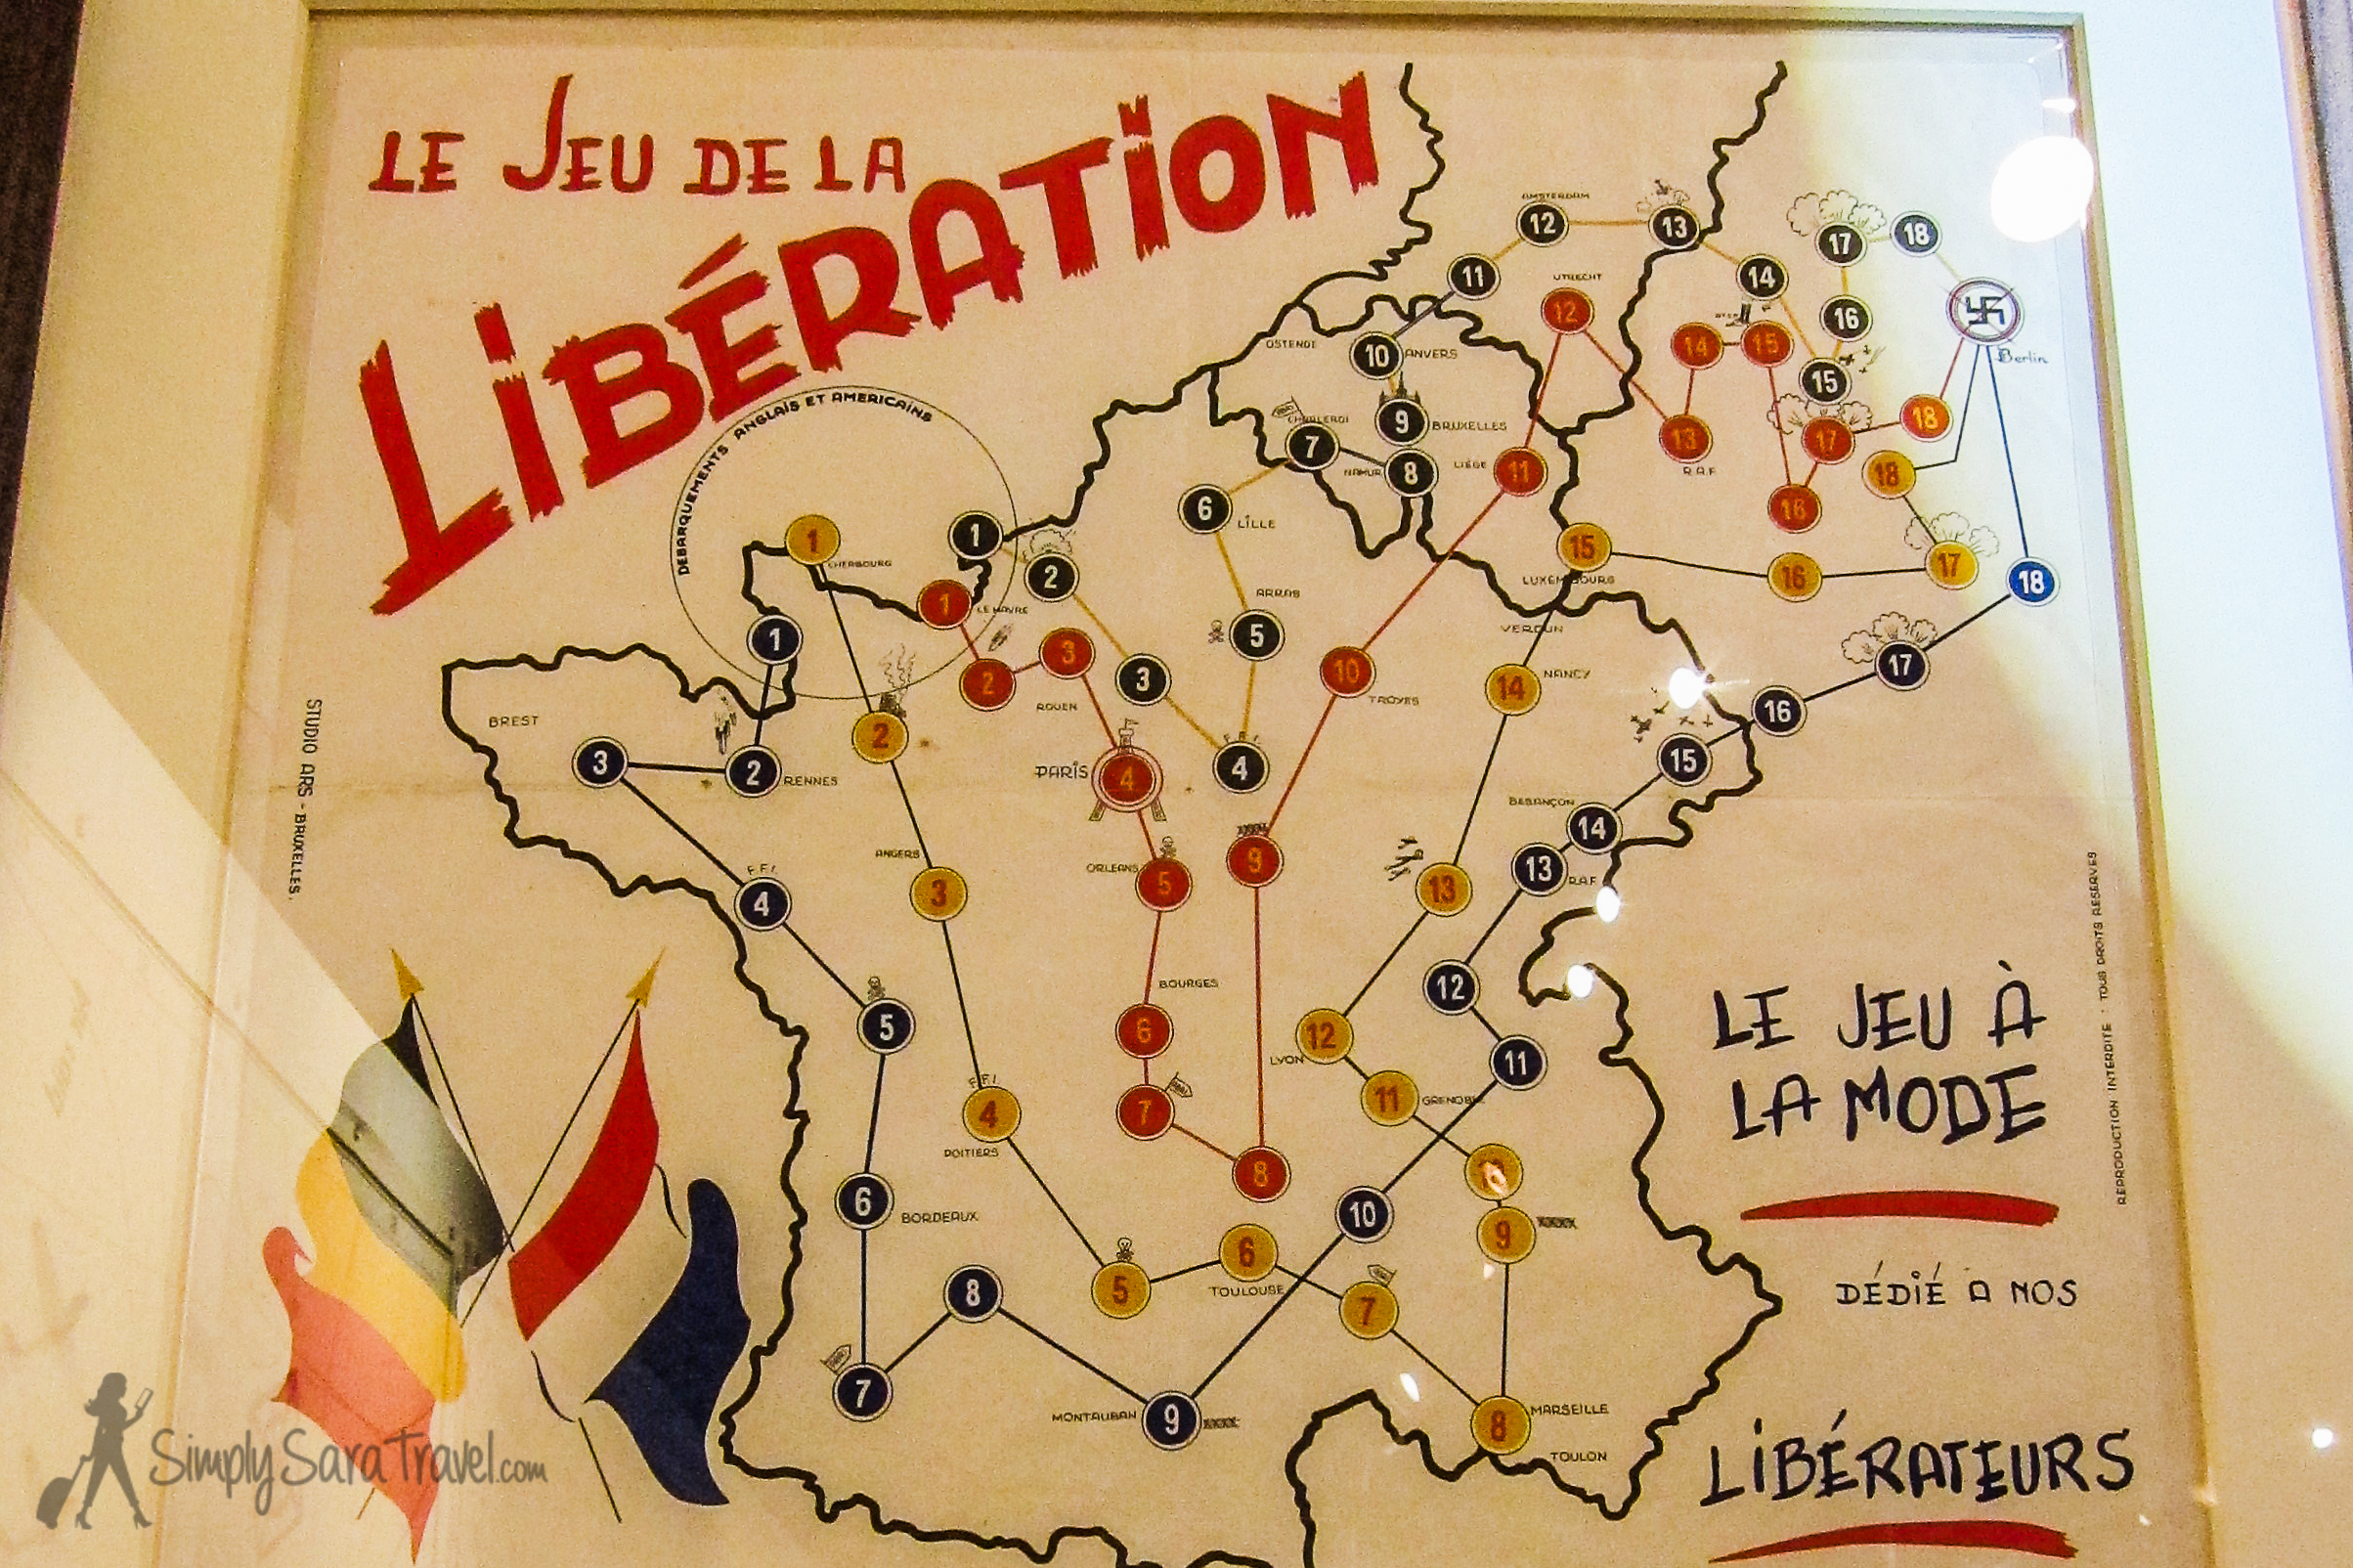 The game is dedicated to their liberators (bottom right).